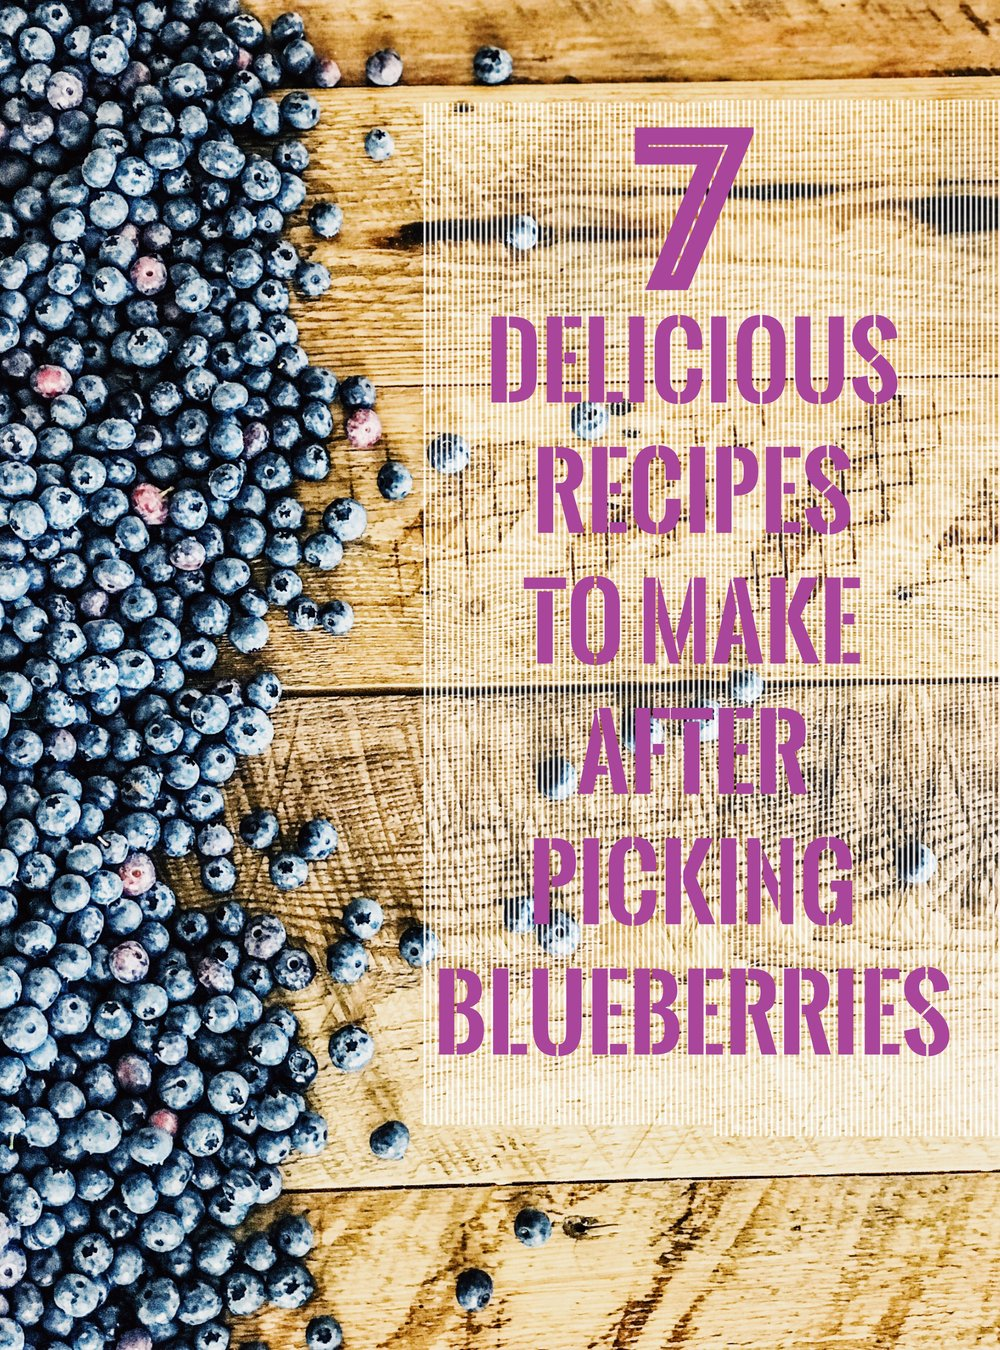 7 Recipes To Make With Blueberries. How to make Blueberry Jam, Blueberry Ice Cream, Blueberry Pancakes, Blueberry Yogurt Berries, Blueberry Peach Salsa, Blueberry Pie, Blueberry Angel Food Cake Whipped Topping Dessert. What to do with blueberries after you go blueberry picking. #blueberrypie #blueberryicecream #blueberrypancakes #blueberrysalsa #blueberryyogurtberries #blueberrytart #blueberrypie